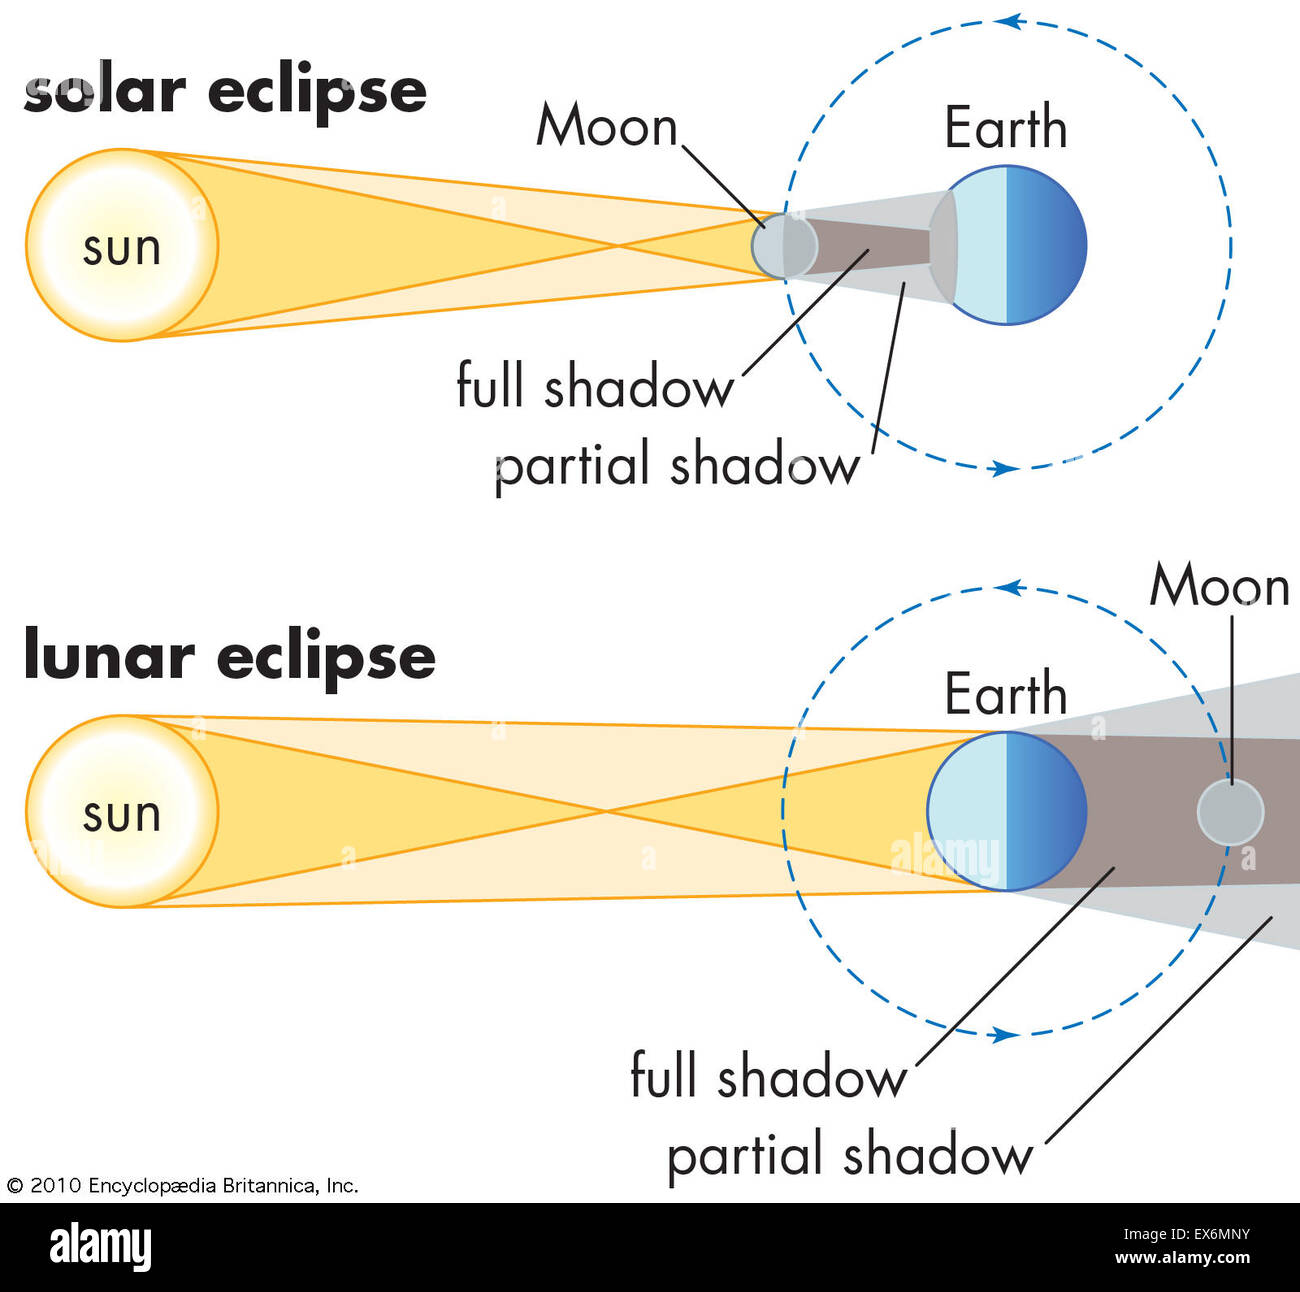 Solar And Lunar Eclipses Stock Photo 84970535 Alamy